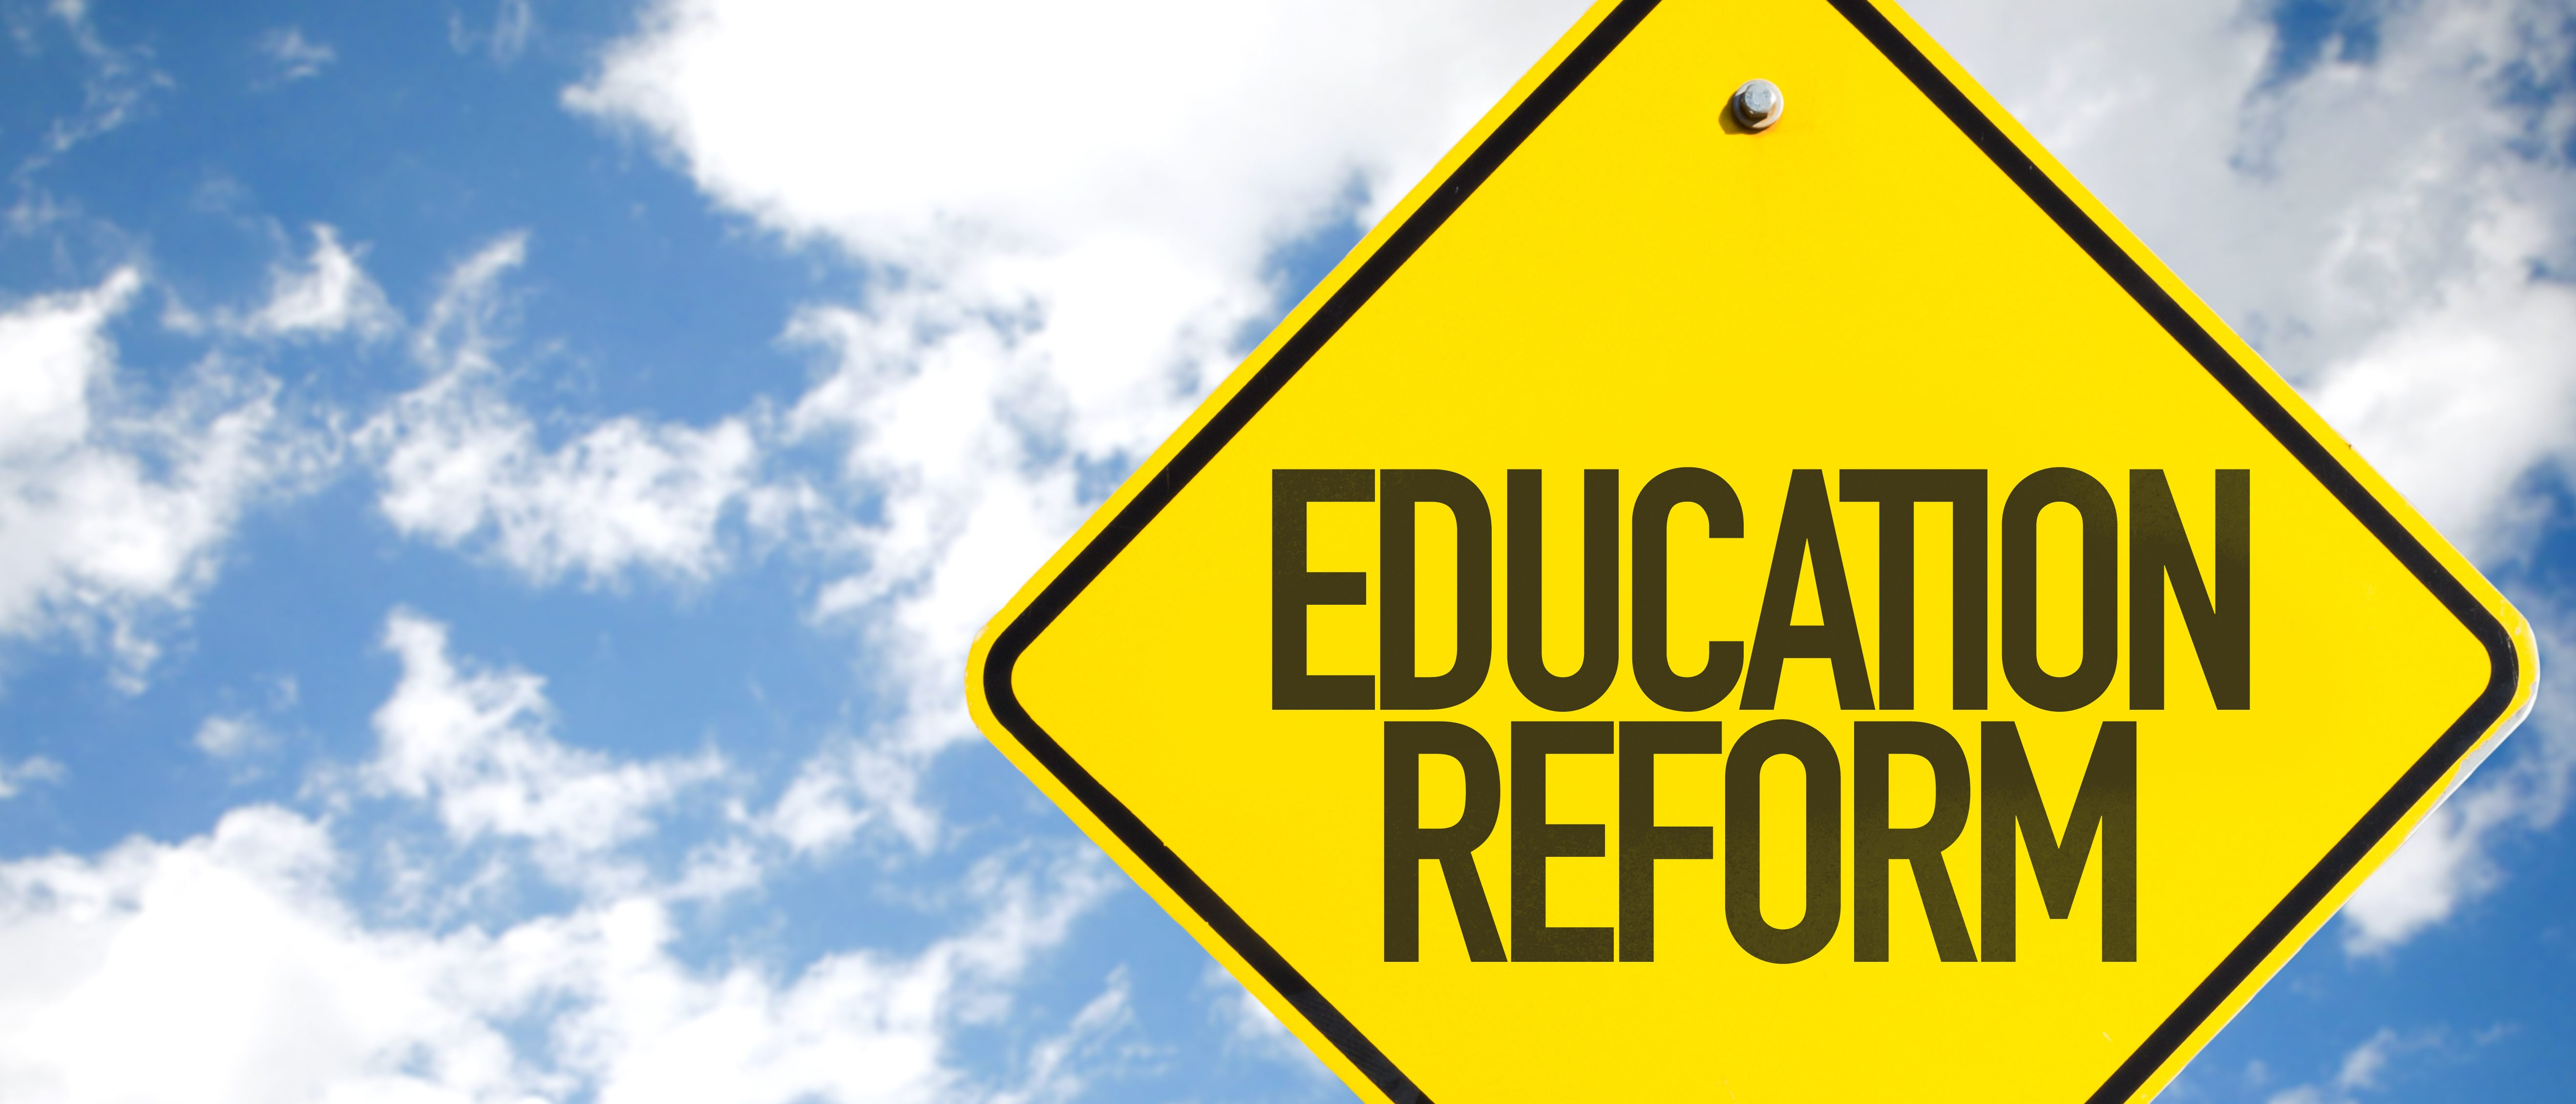 Education Reform sign with sky background. (Shutterstock/Gustavo Frazao)